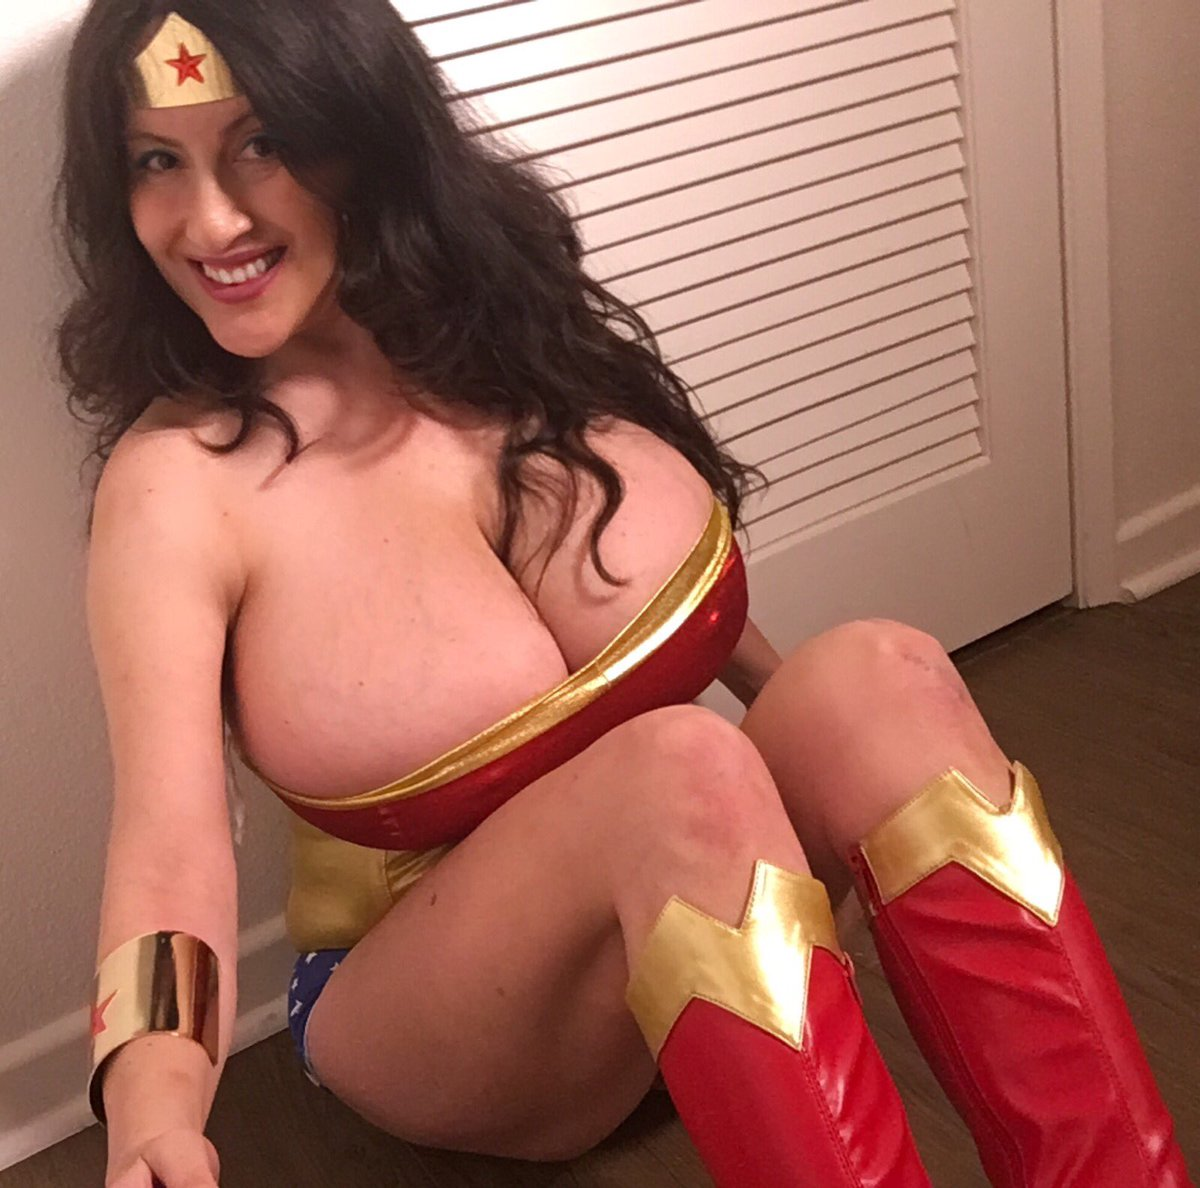 What's the difference between Hollywood's Wonder Woman and me?about 14 cup sizes lol #wonderwoman #wonder